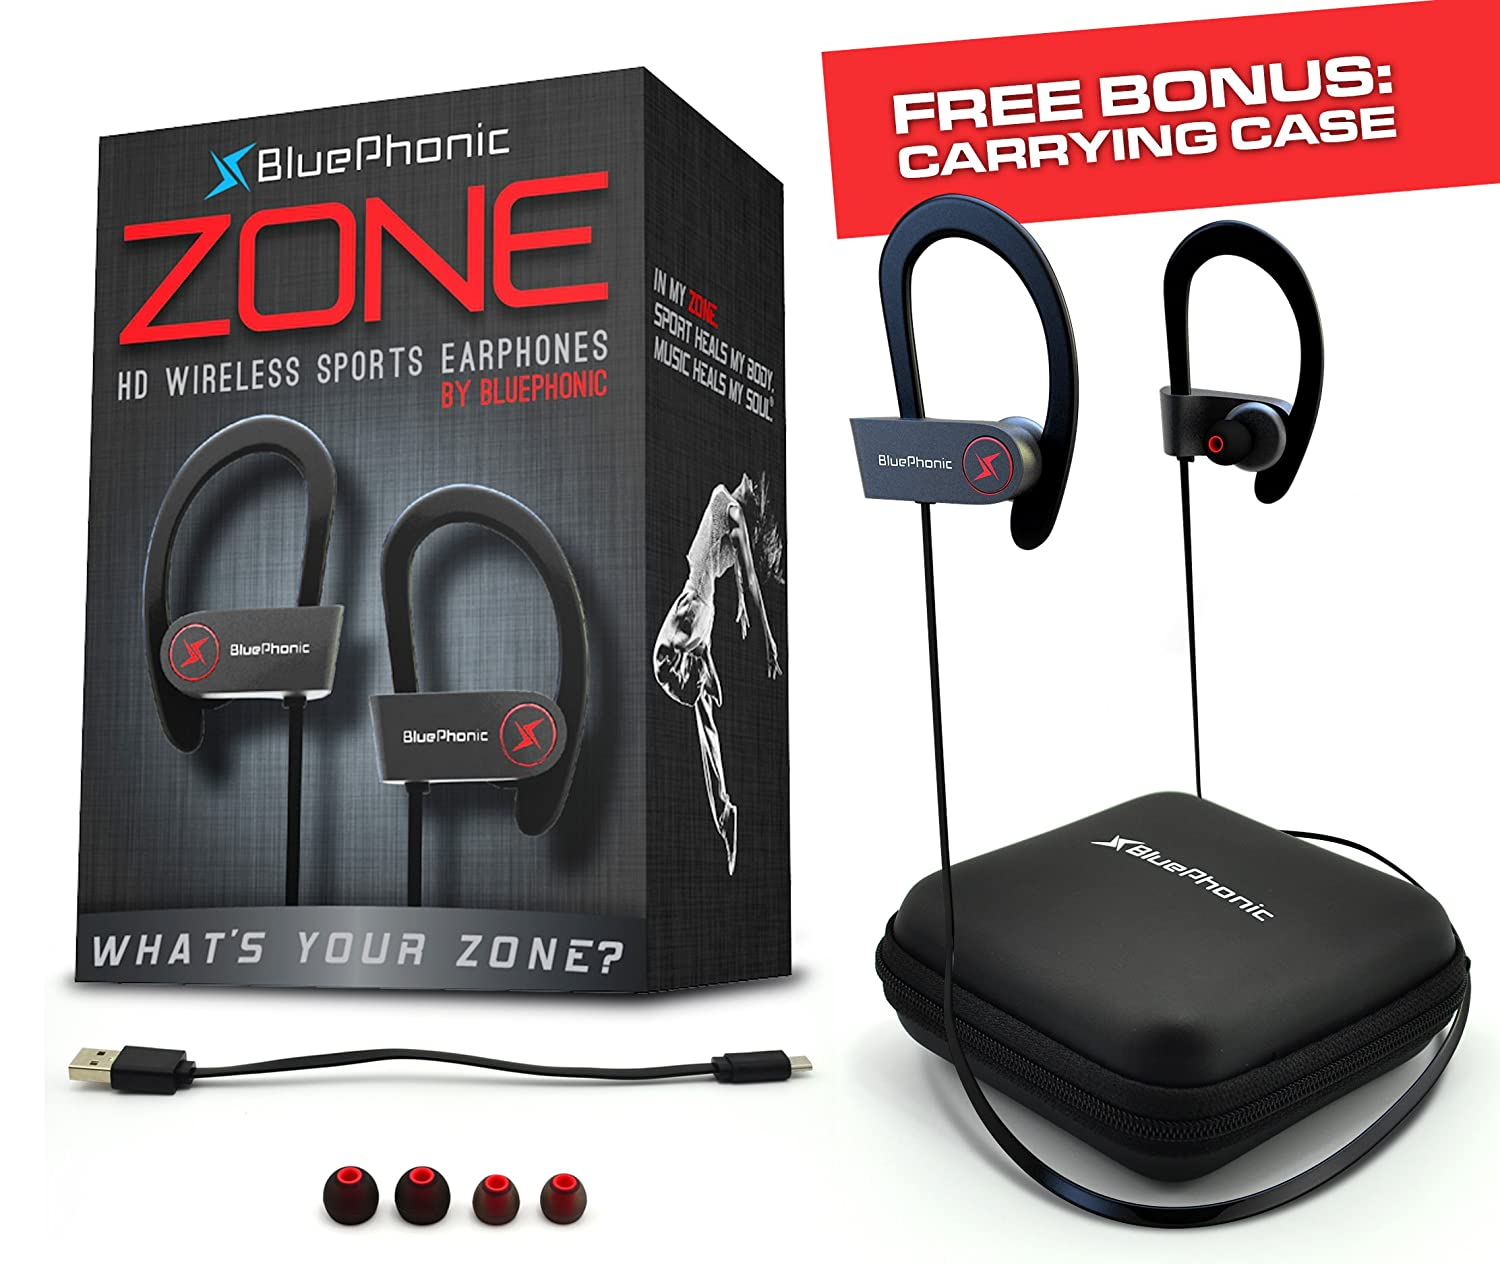 BluePhonic Wireless Sport Bluetooth Headphones, Hd Beats Sound Quality,  Sweat Proof Stable Fit in Ear Workout Earbuds, Ergonomic Running Earphones,